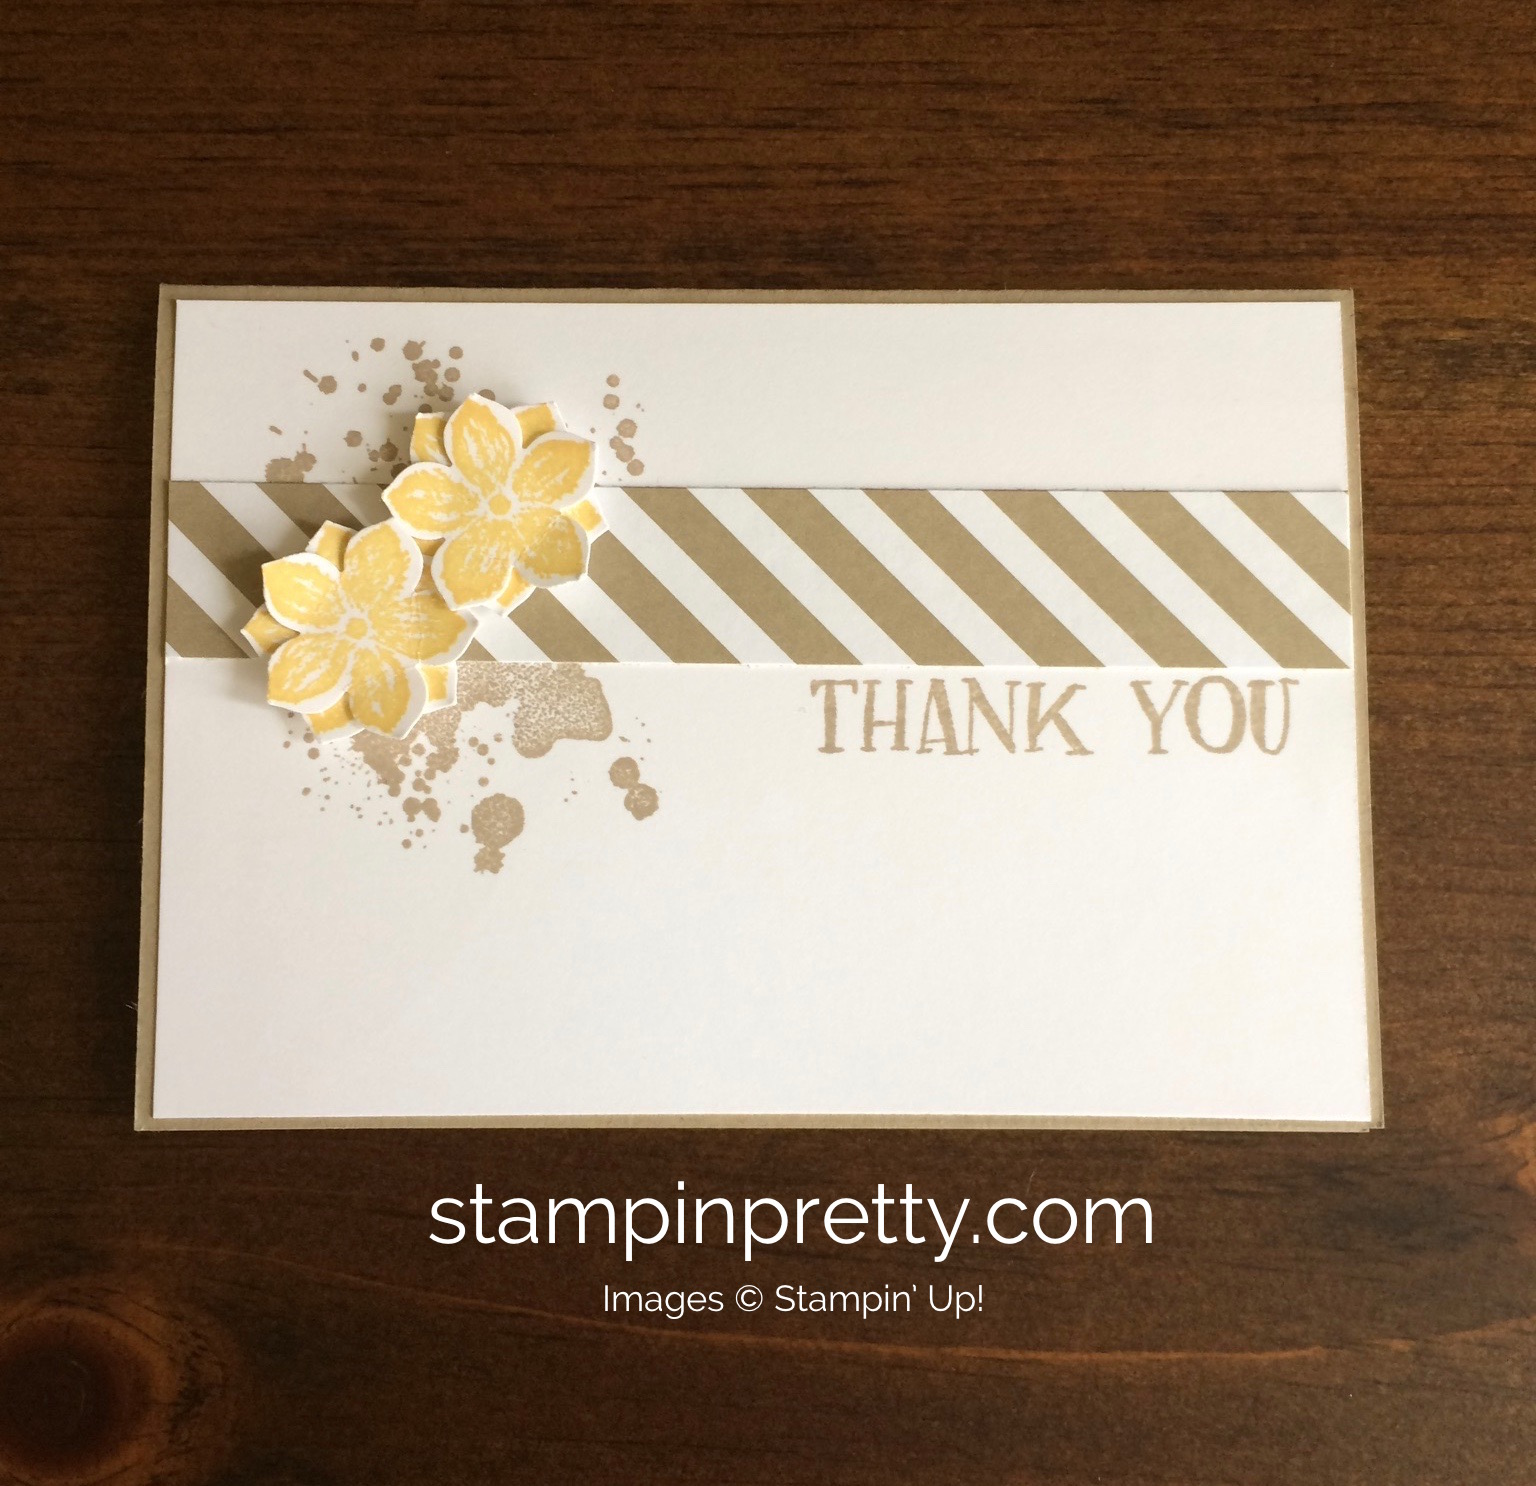 Stampin Up Petite Petals Thank You Card Ideas   Mary Fish Stampinup